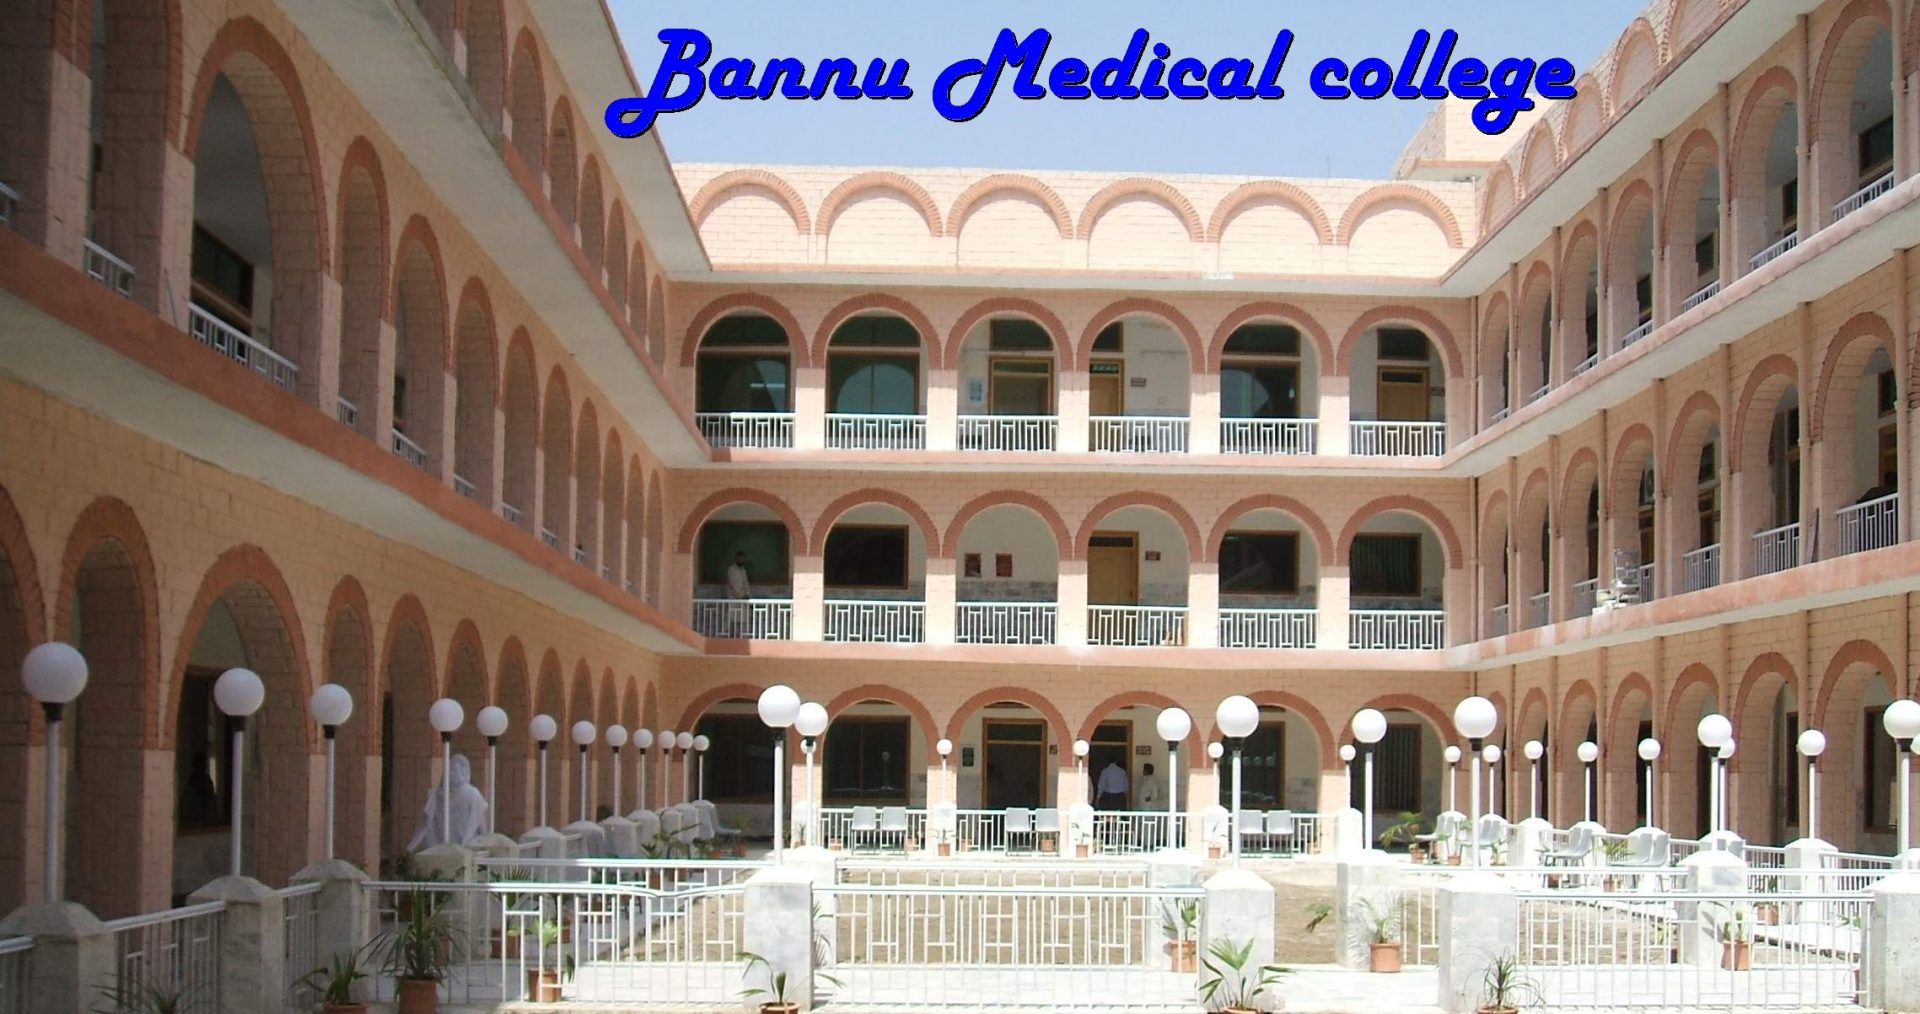 Bannu Medical College Admissions 2016 Requirements, Criteria